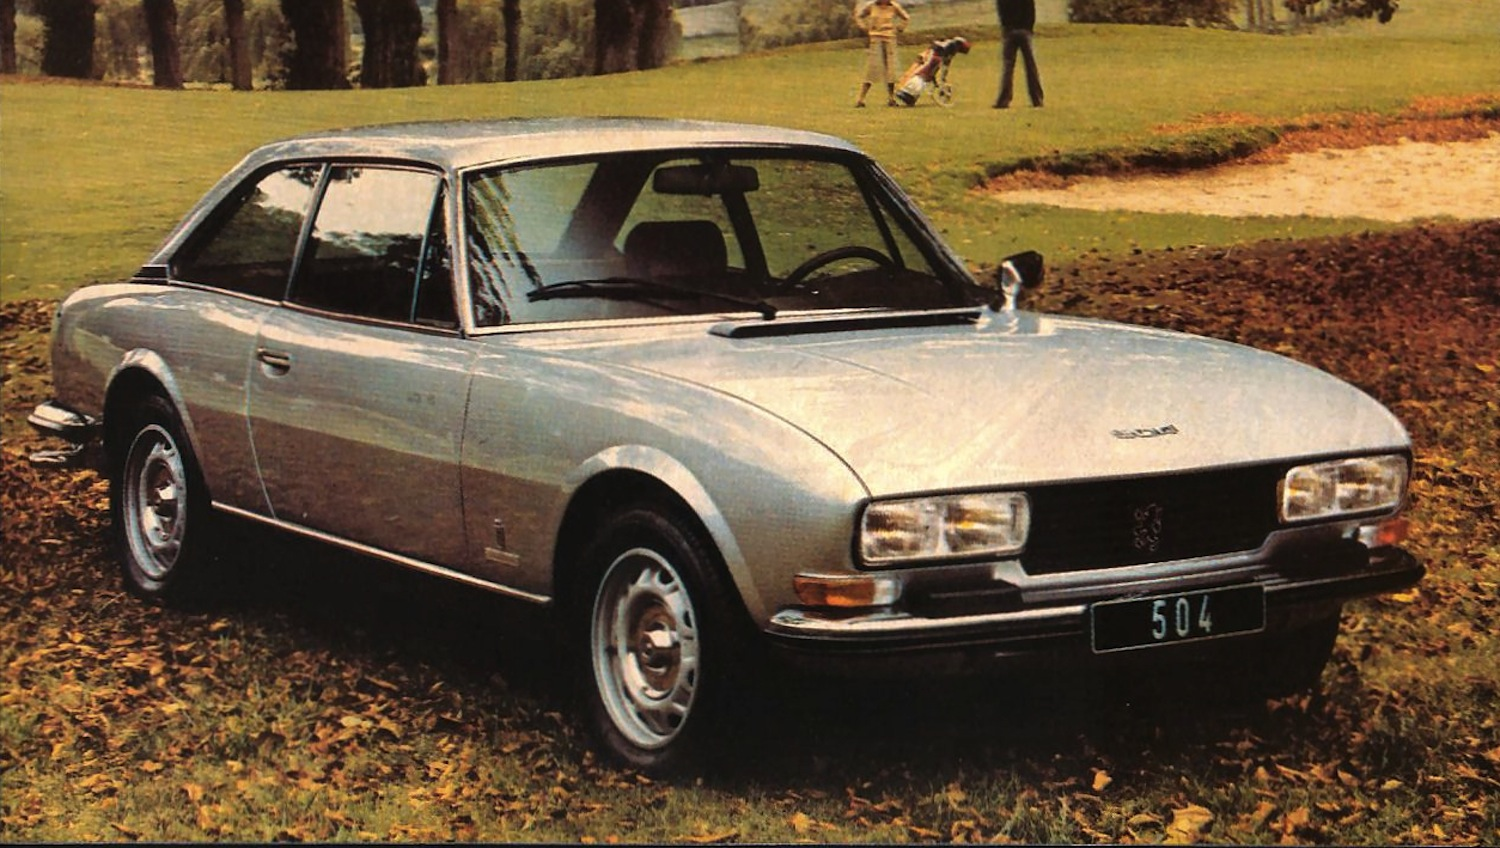 Index Of Wp Content Uploads Photo Gallery Peugeot 504 Coupa C V6 Ti